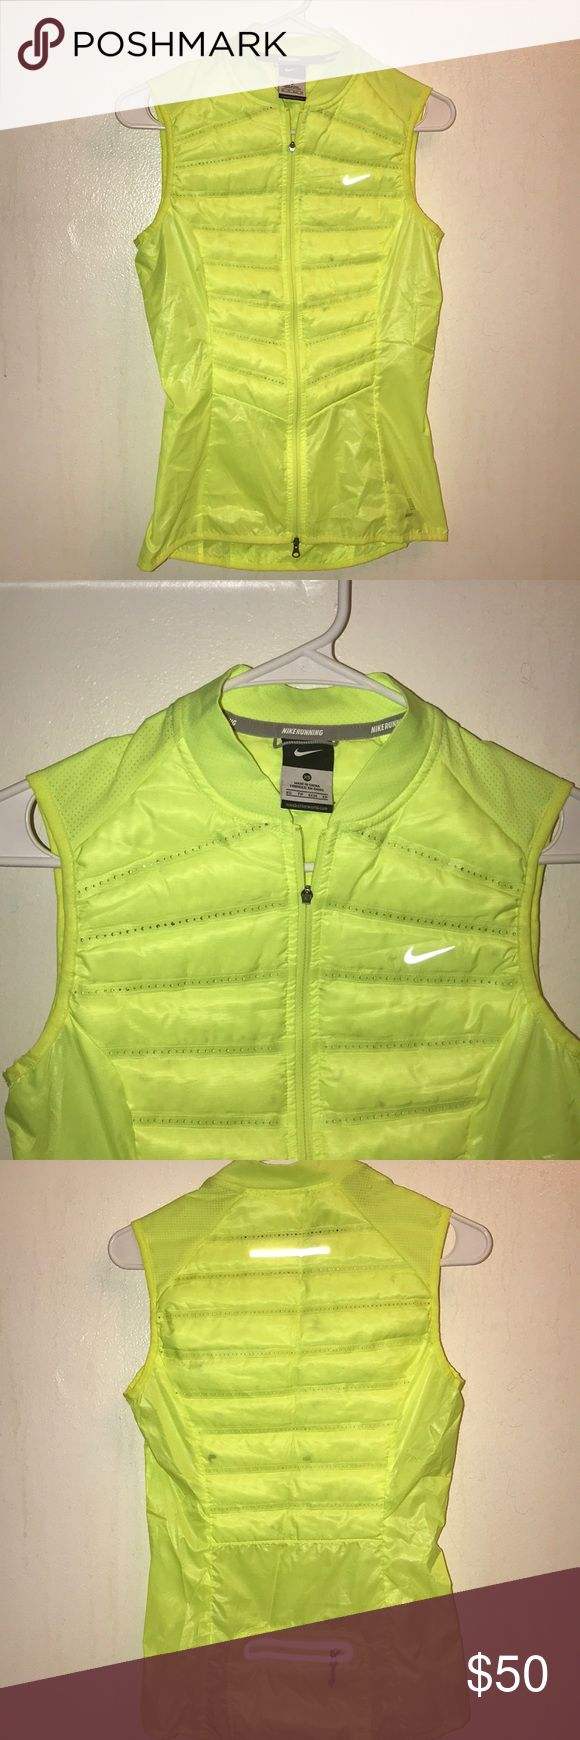 Nike Neon Yellow Vest Neon yellow XS Nike Vest, BRAND NEW WITHOUT TAGS. It was sadly too small for me and I never have worn it. Has a pocket in the back for keys or etc :) Nike Jackets & Coats Vests